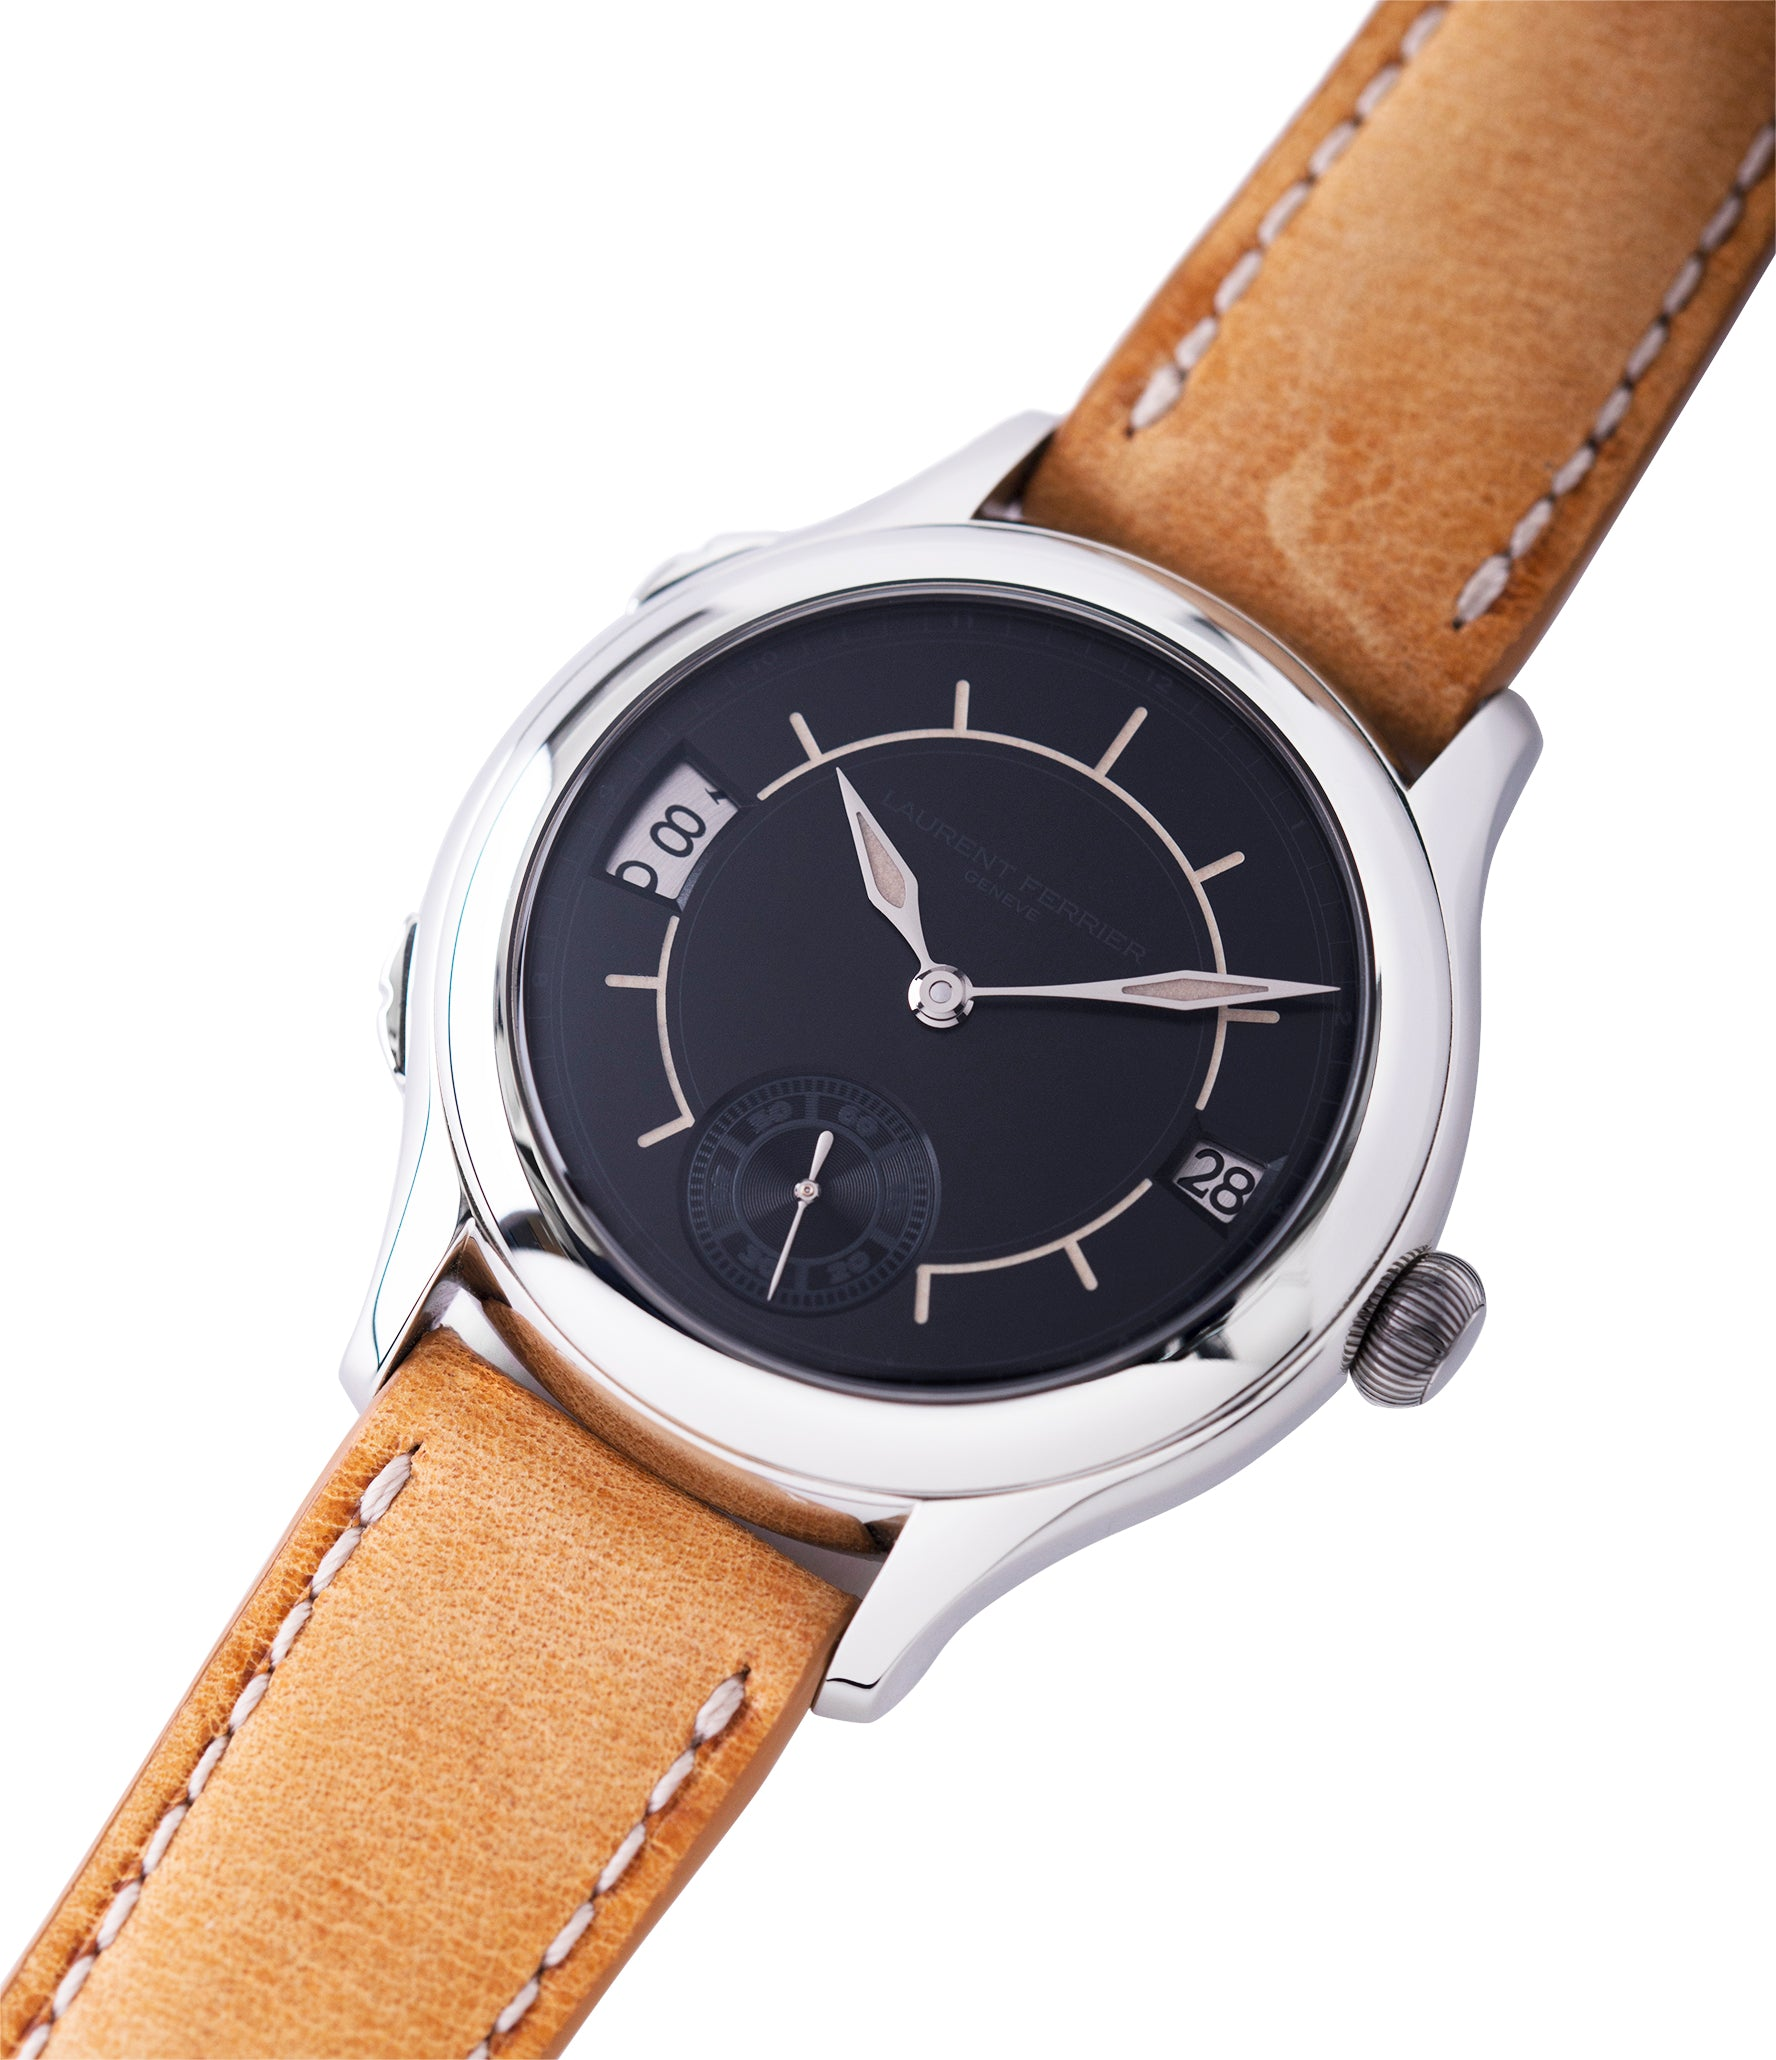 for sale preowned Laurent Ferrier Galet Traveller Boreal steel dual-timezone black dial dress watch for sale online at A Collected Man London approved seller of pre-owned Laurent Ferrier independent watchmakers